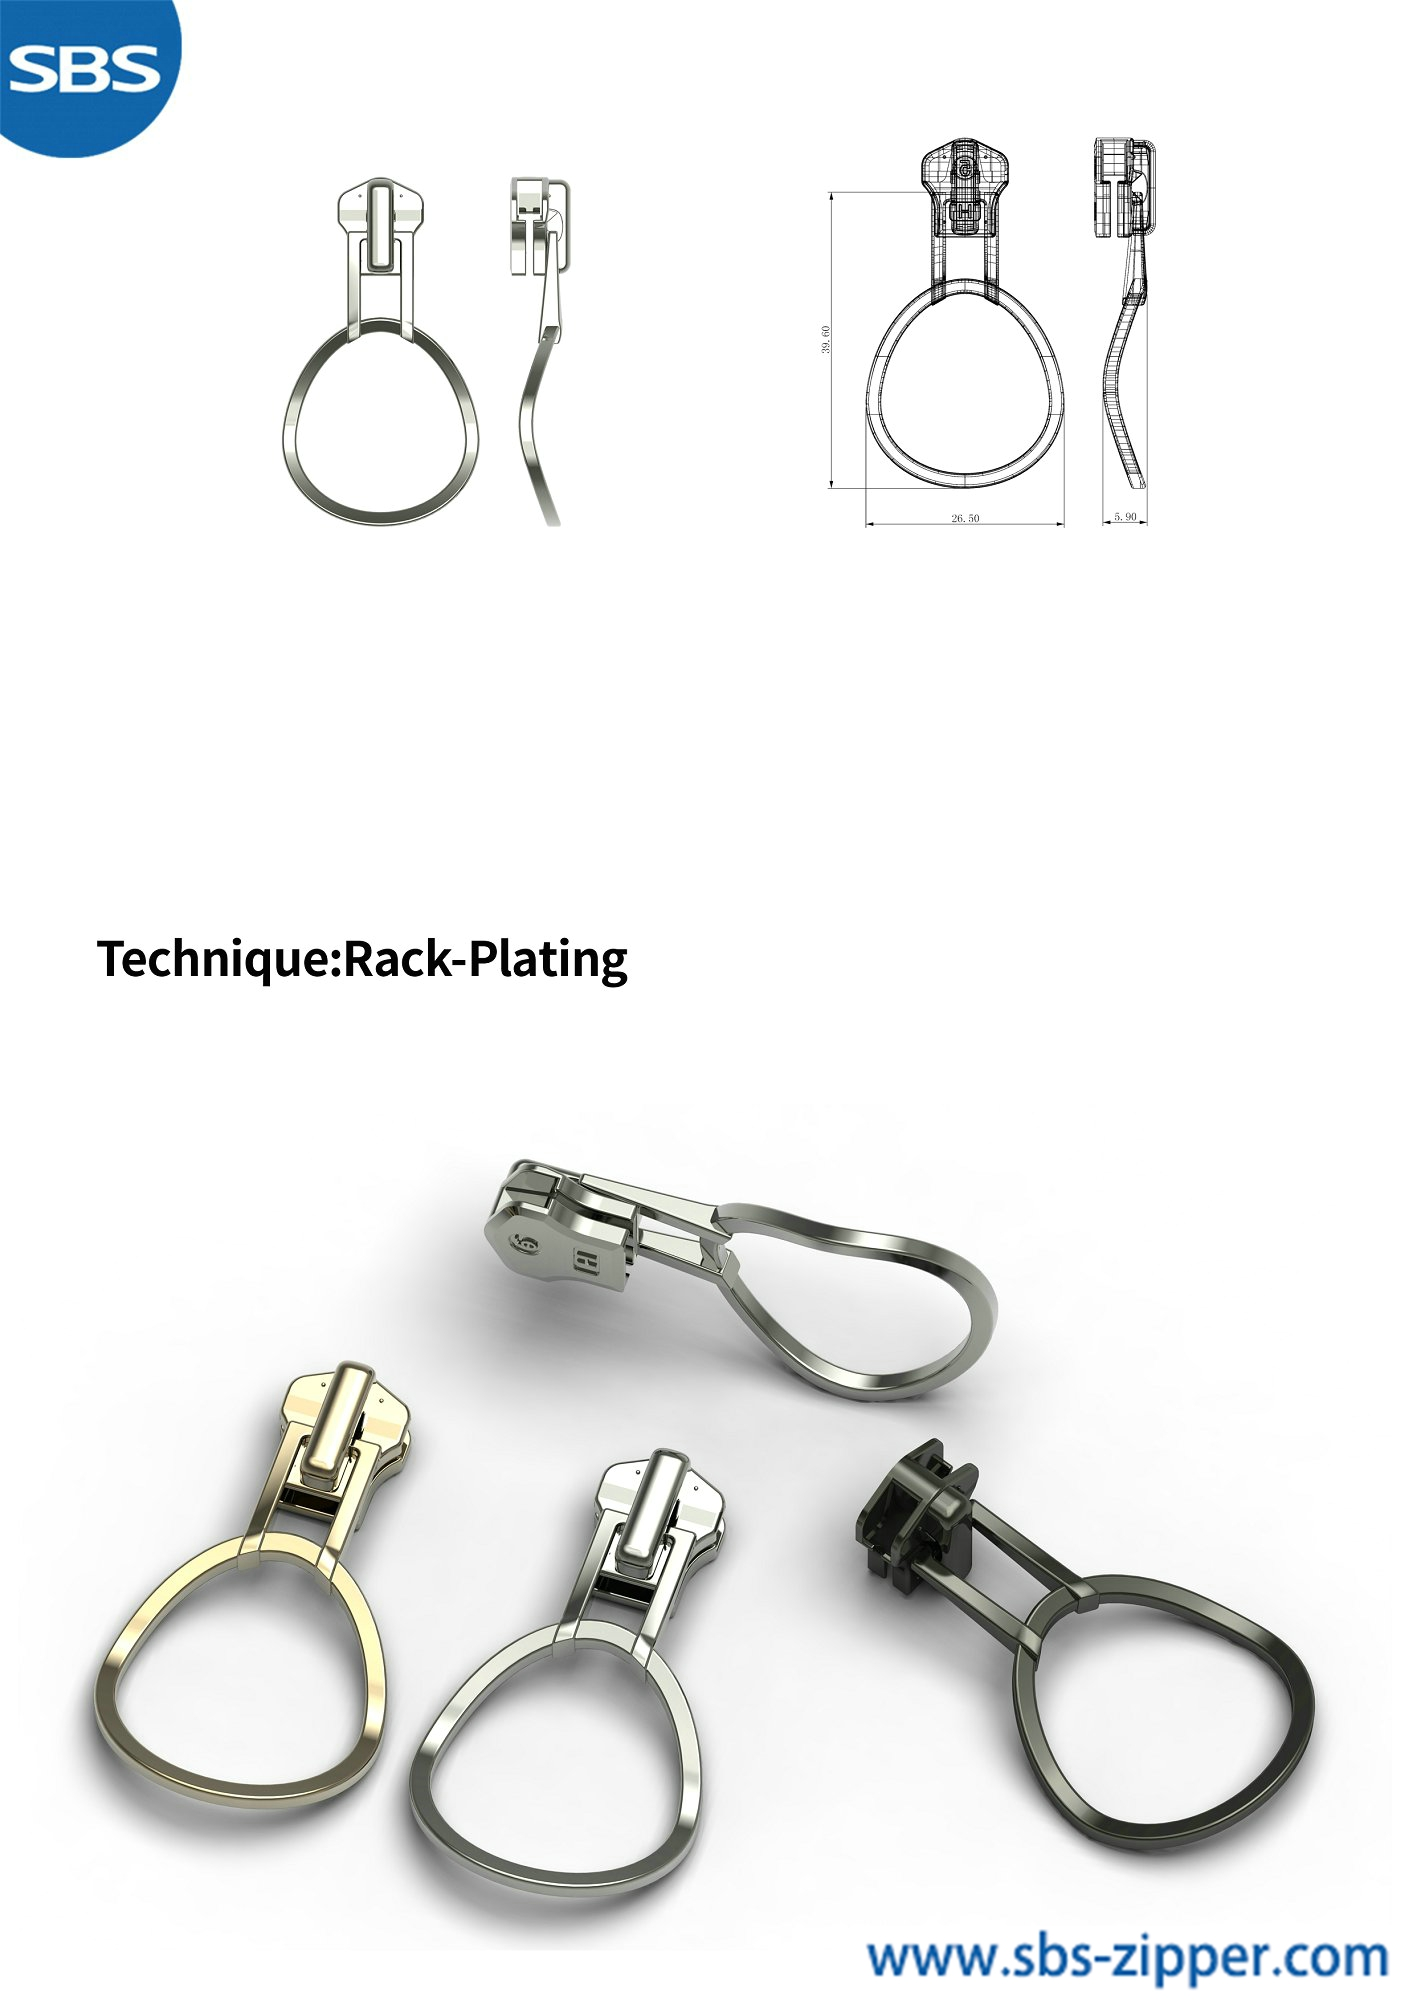 Heavy Duty Zipper Pulls Supplier 18AWC026丨sbs-zipper.com